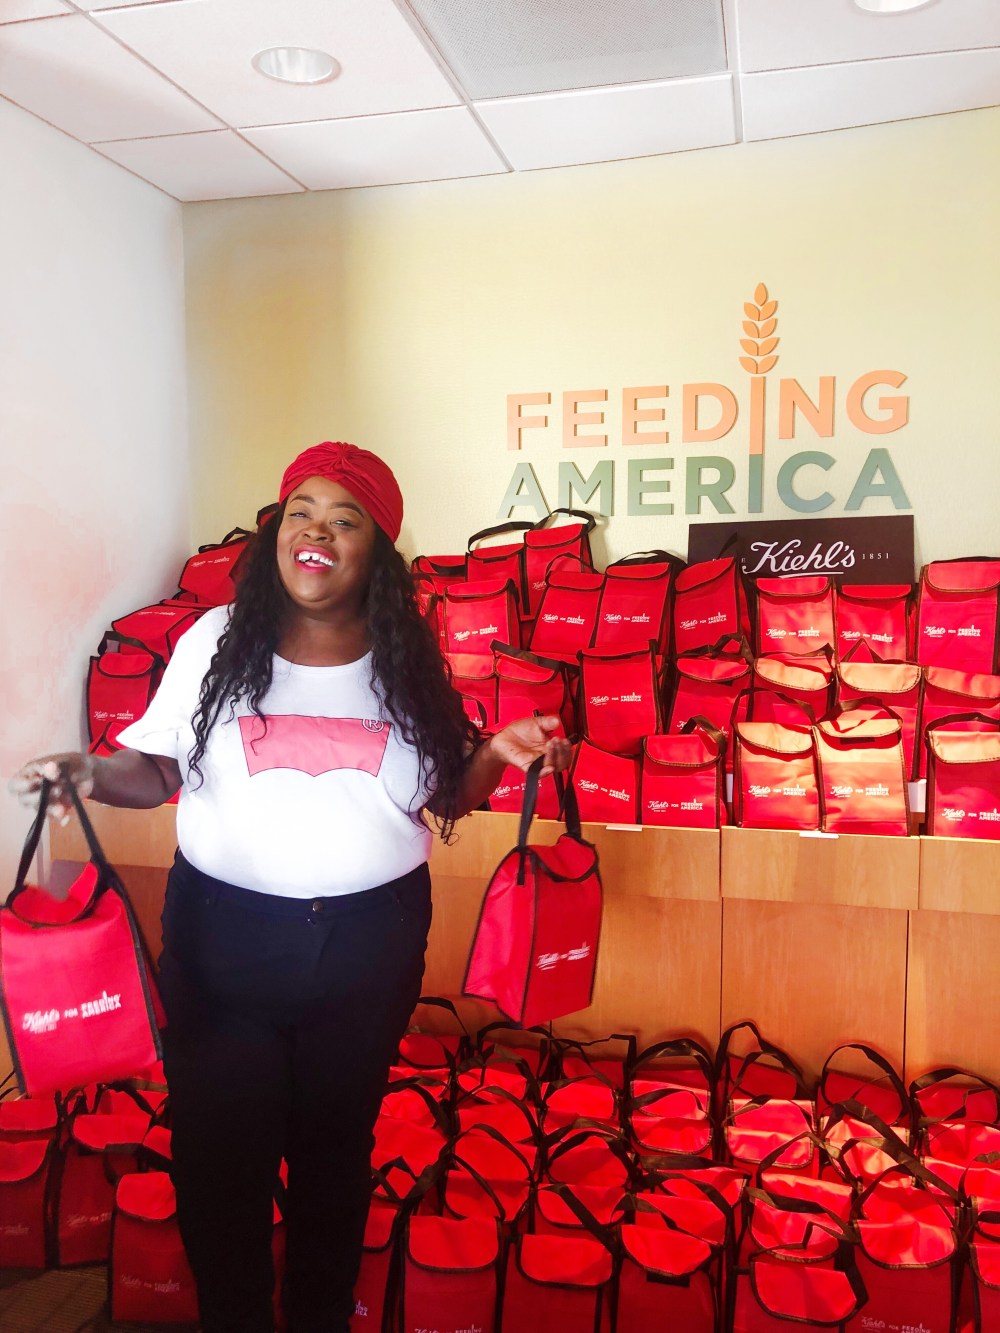 Chicago Food Depository, Kiehl's, Kiehls, feed America, Feeding America, friendsgivings, Food depository, #kiehlsfeedsAmerica, #no1shouldGohungry, #Endhunger